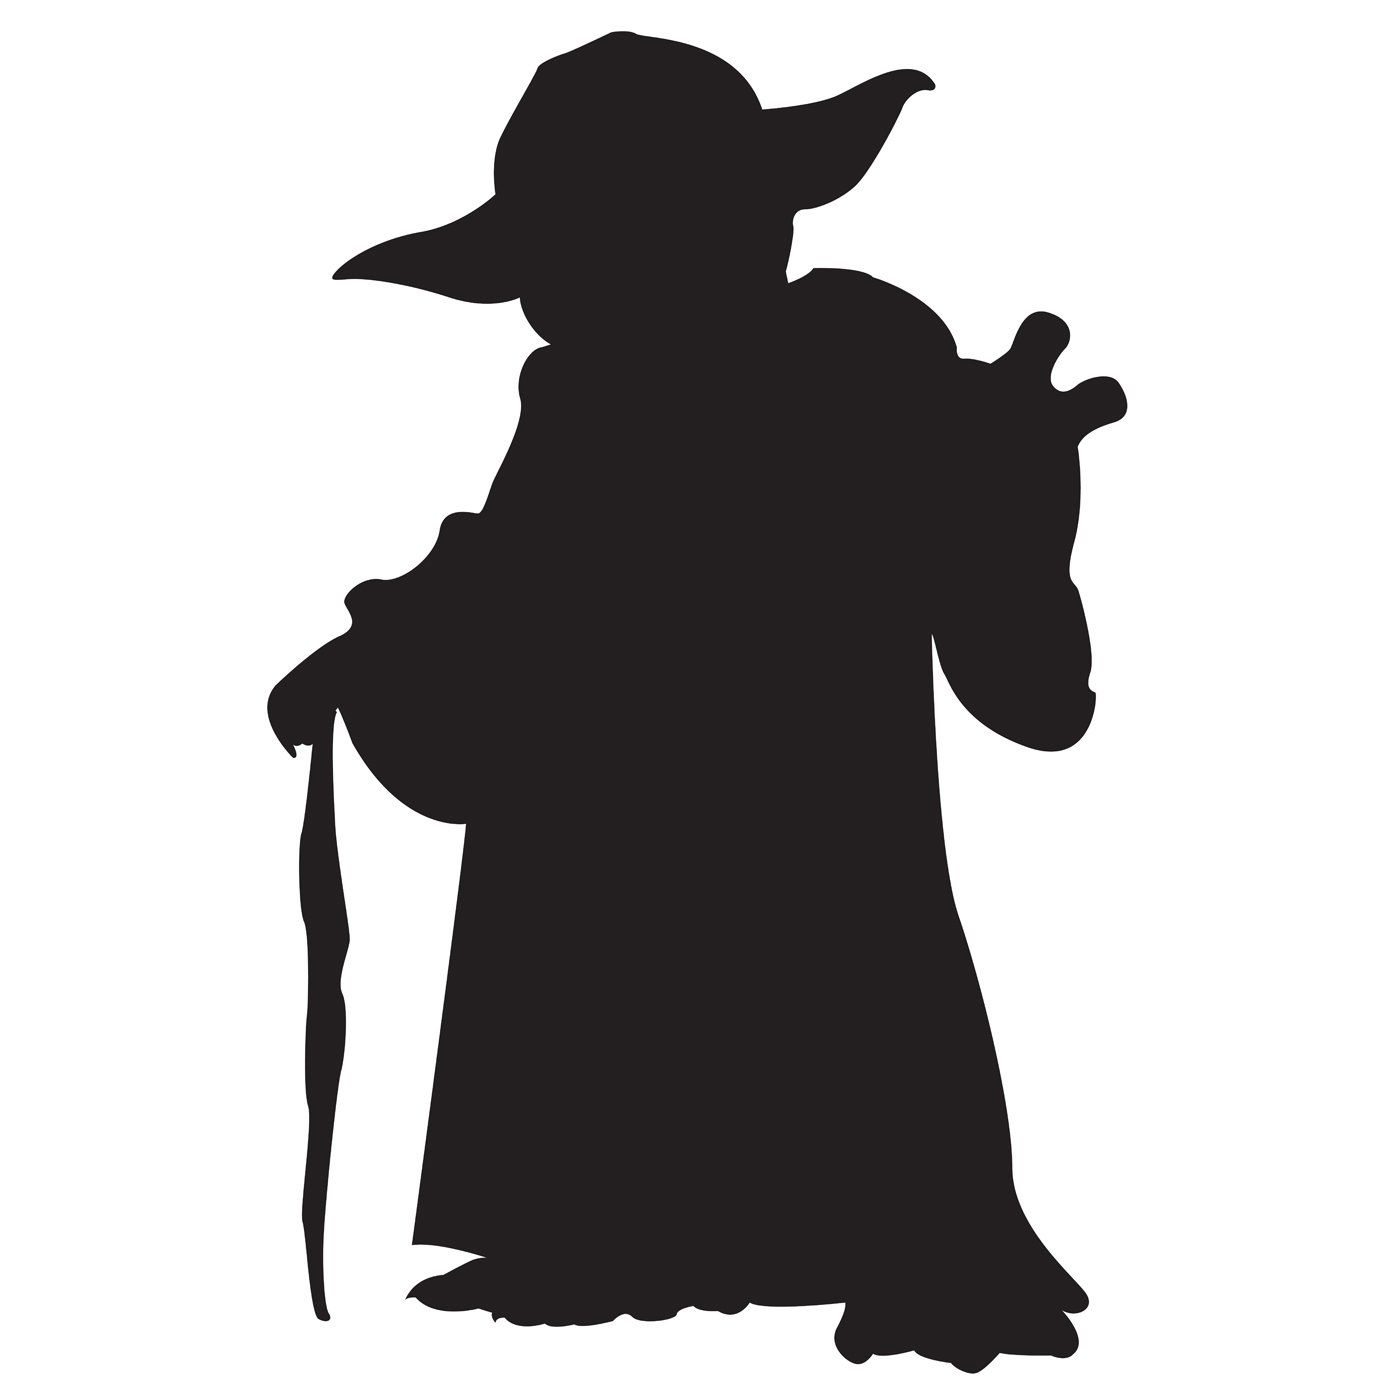 1400x1400 Yoda Pumpkin Template, Cricut And Template